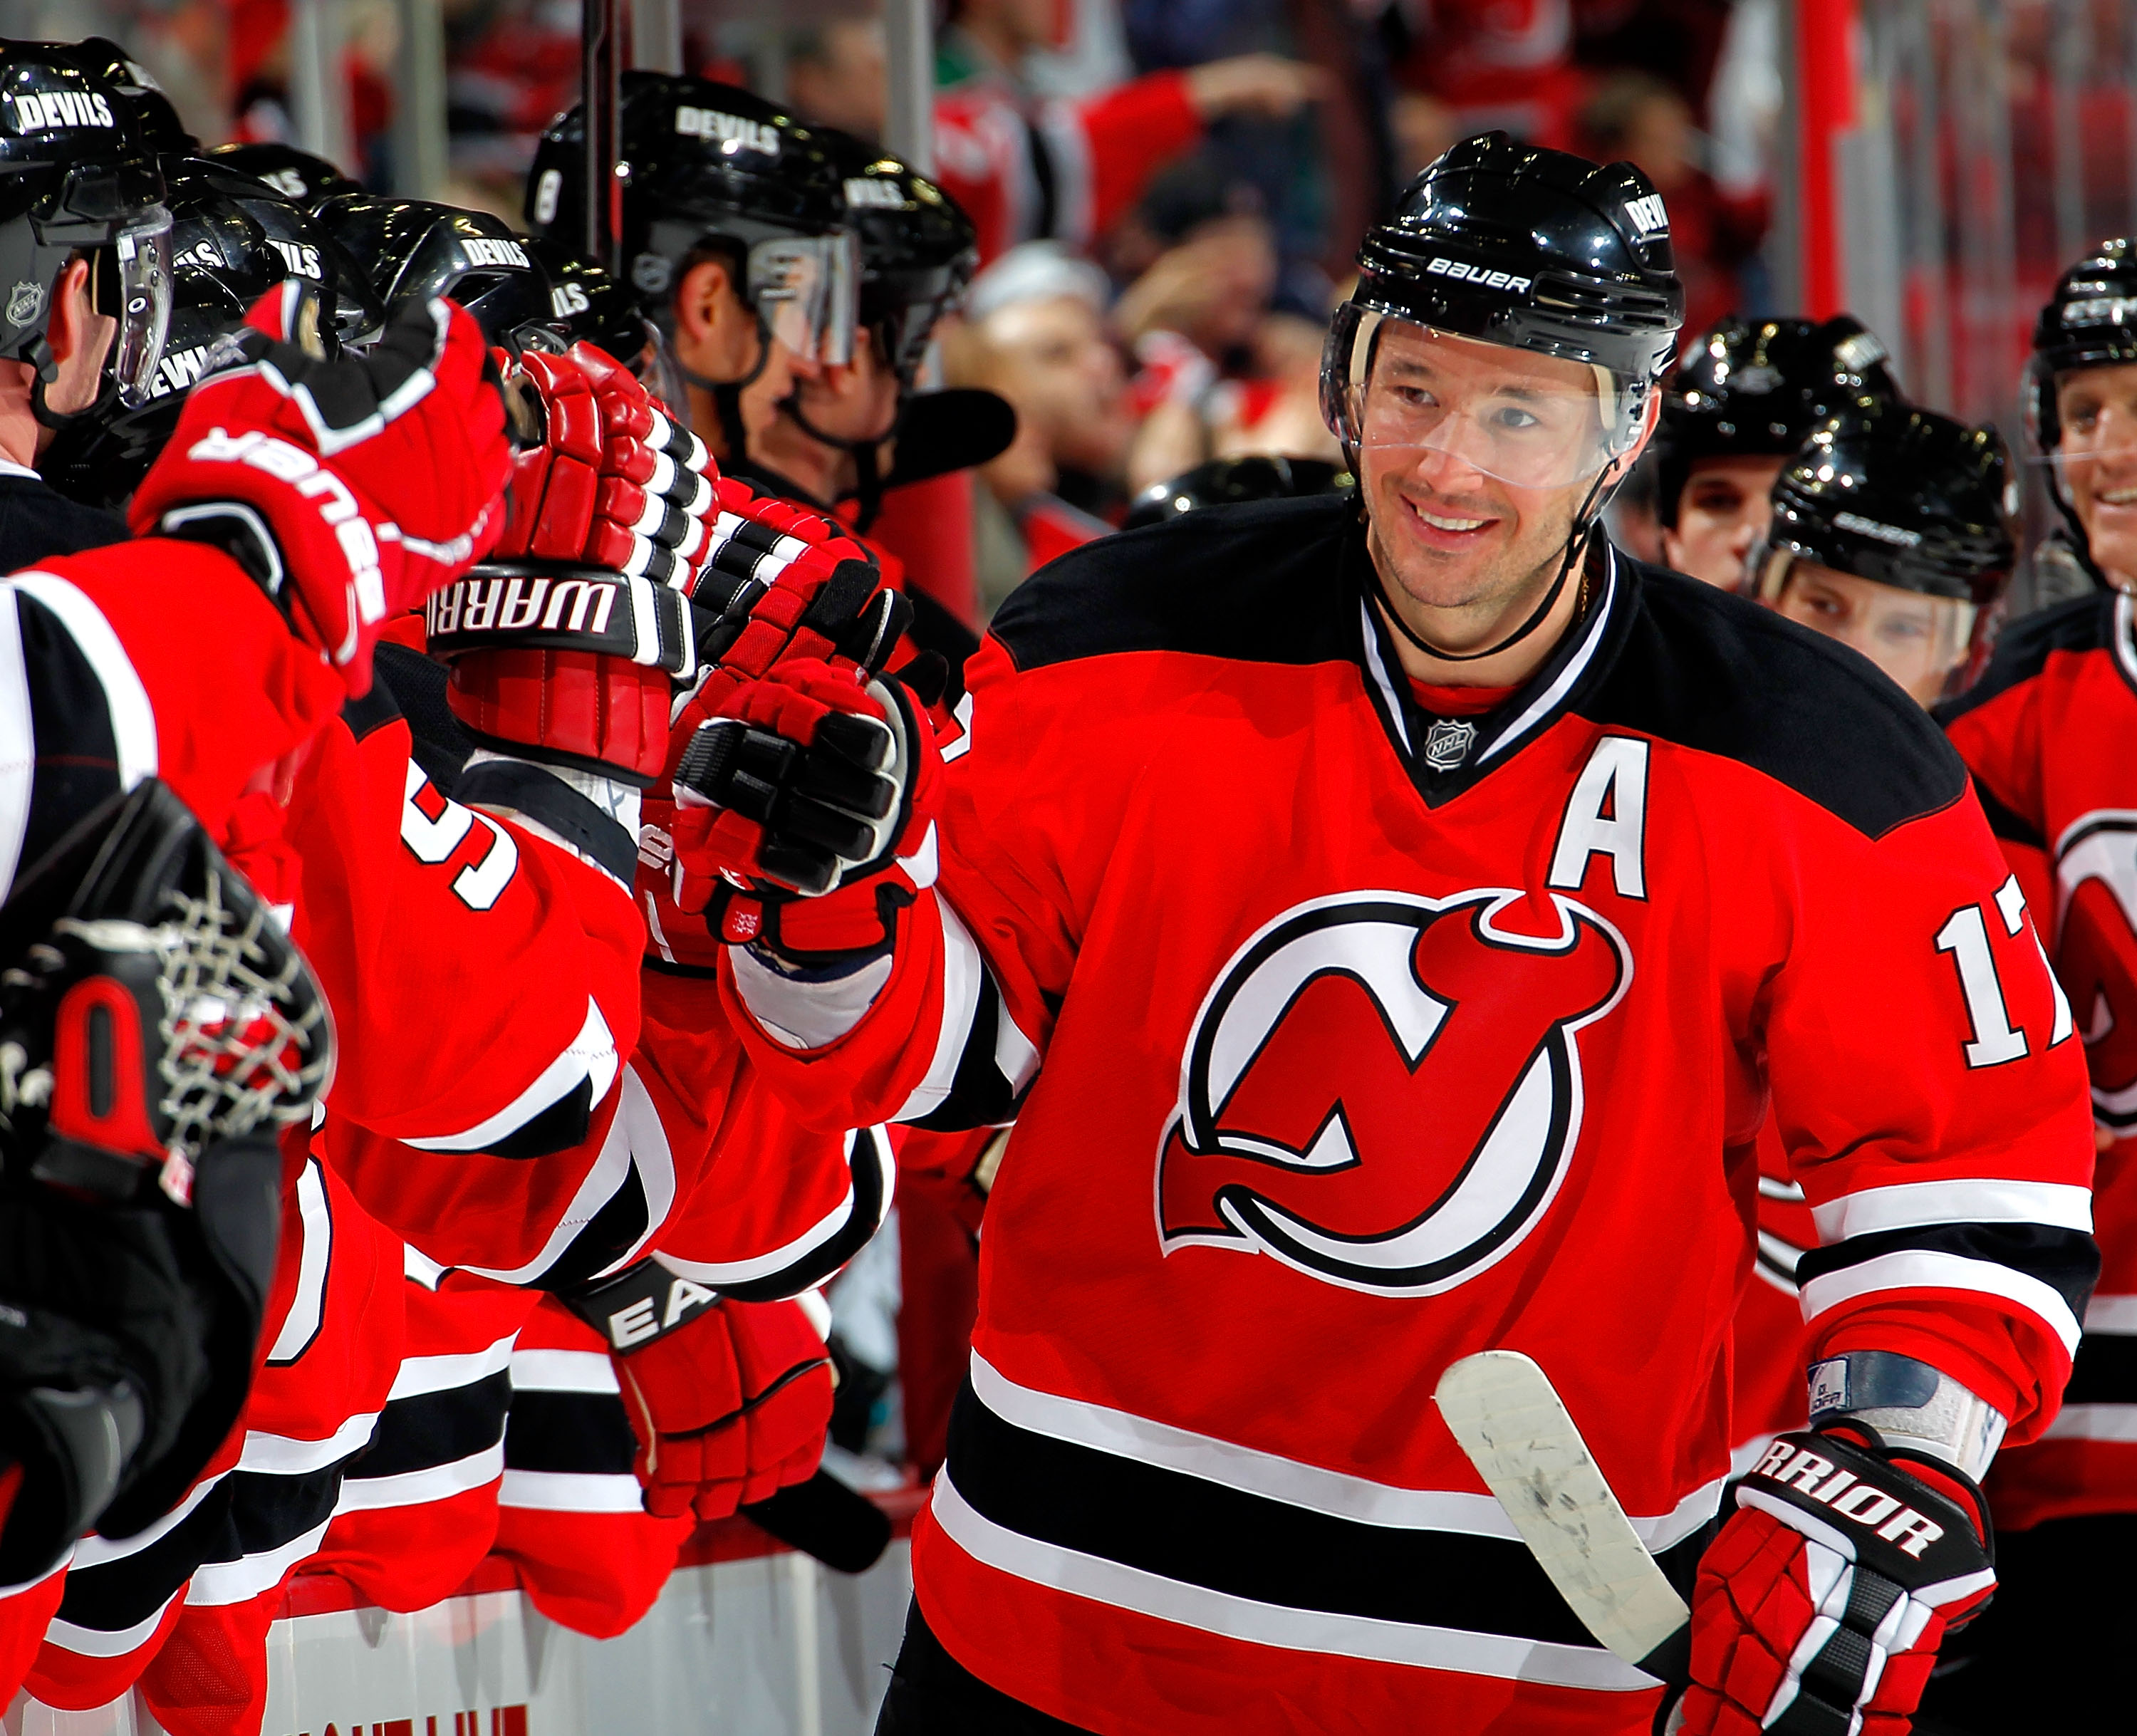 Ilya Kovalchuk has been all smiles of late, and has taken his game to the next level, at both sides of the ice.